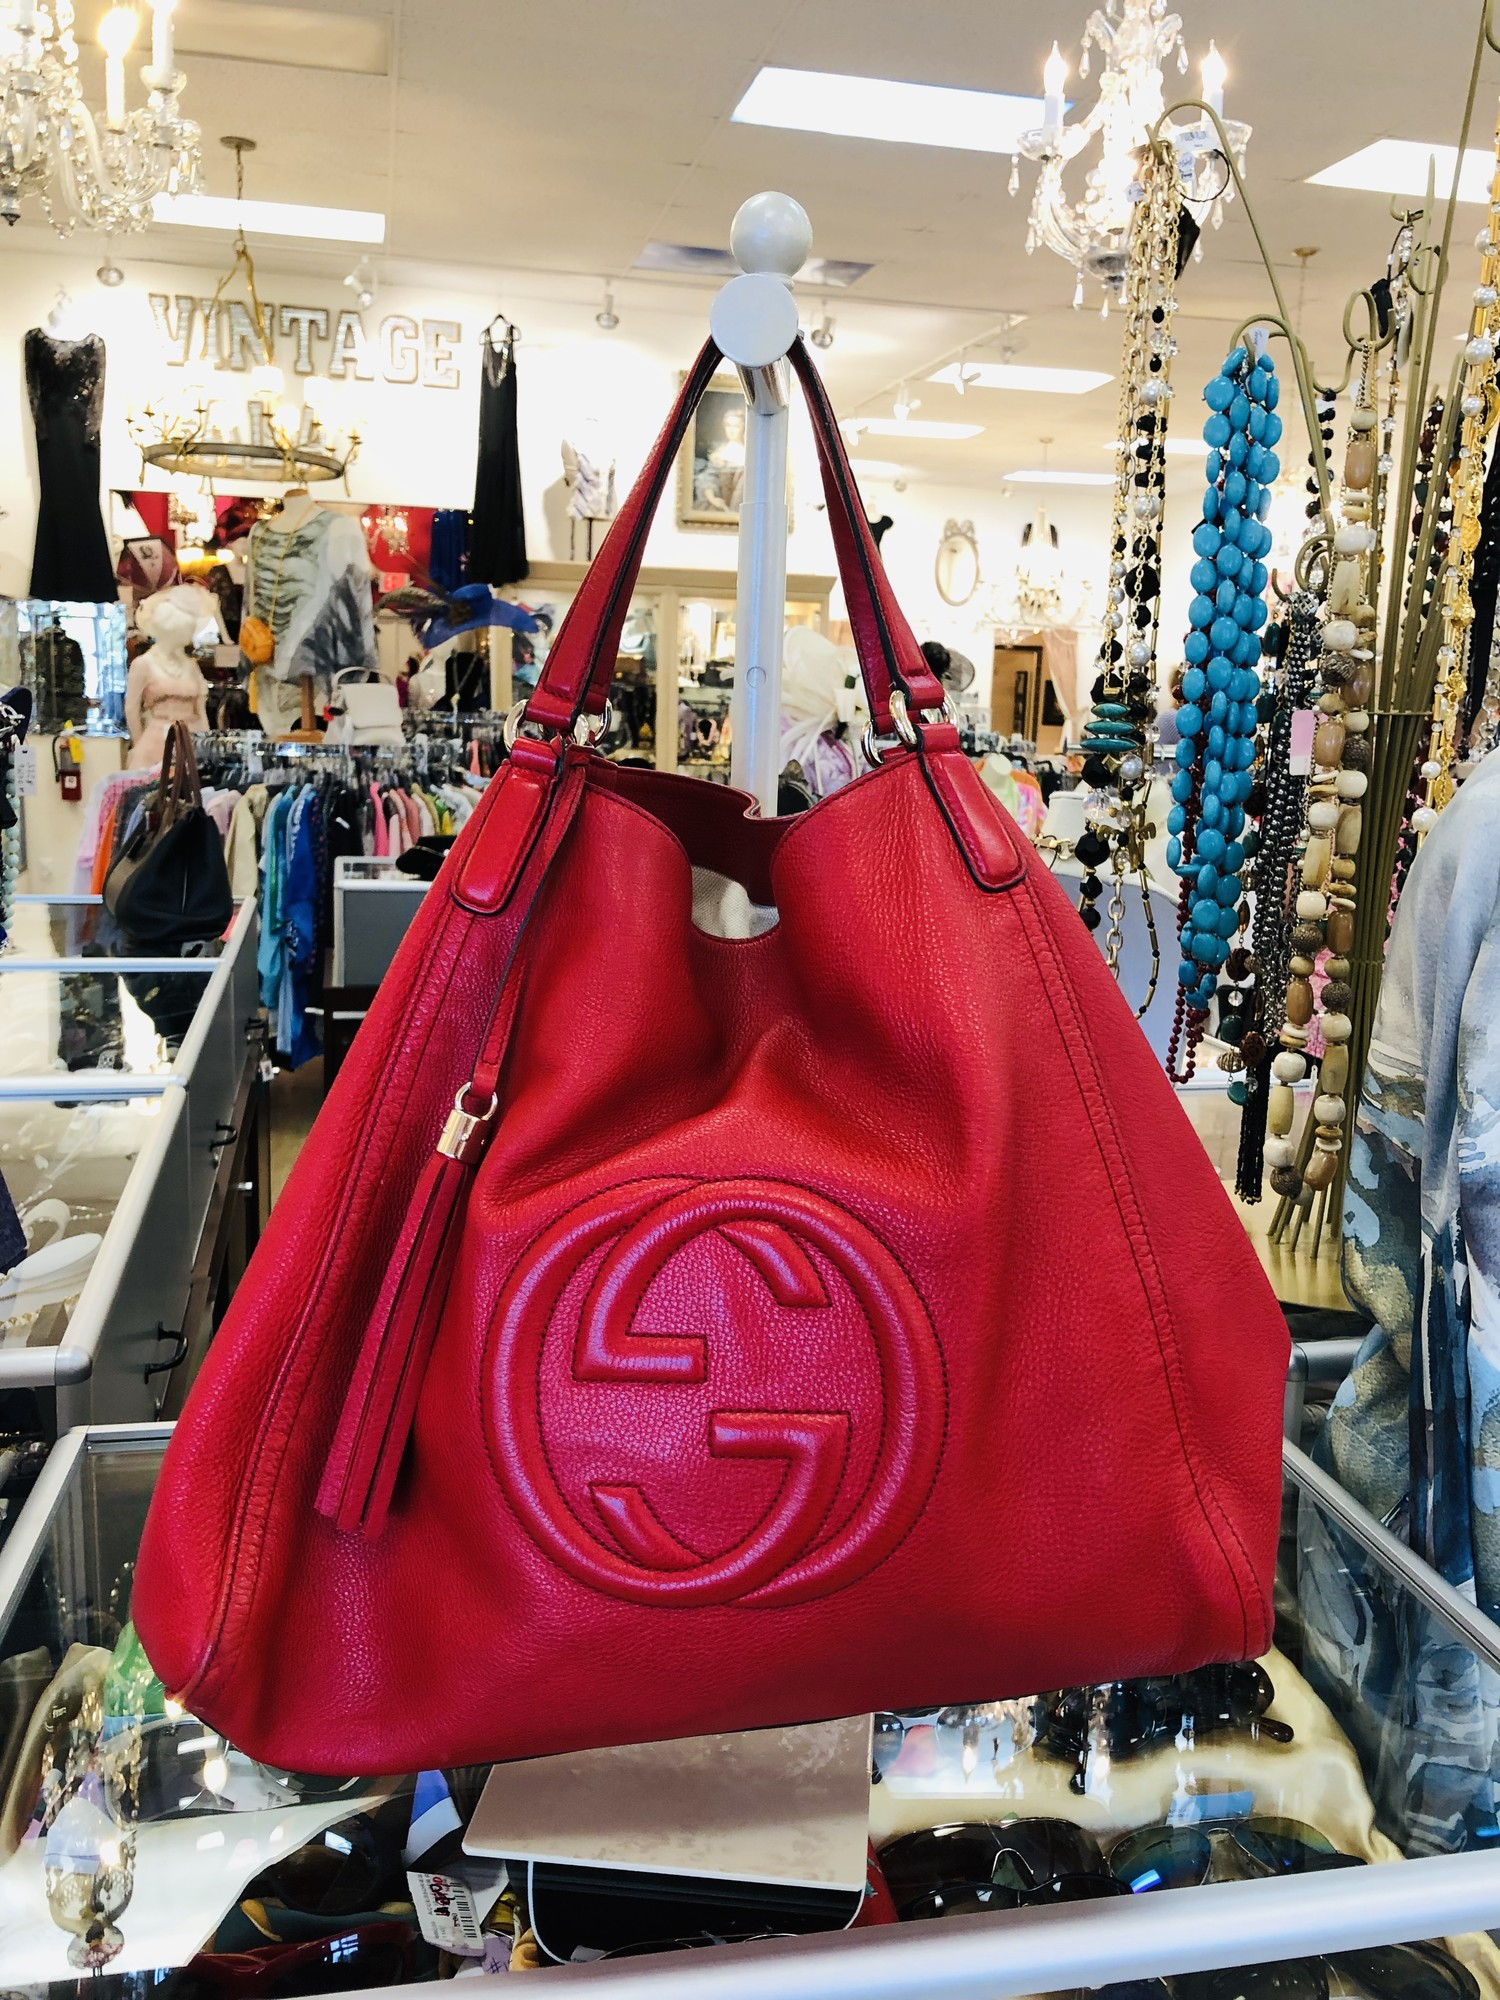 "Gucci red leather Soho shoulder bag, hobo<br /> <br /> LARGE<br /> <br /> Measurements:<br /> 16.75"" L x 8.5"" W x 15.25"" H<br /> <br /> some wear on straps, see photos"